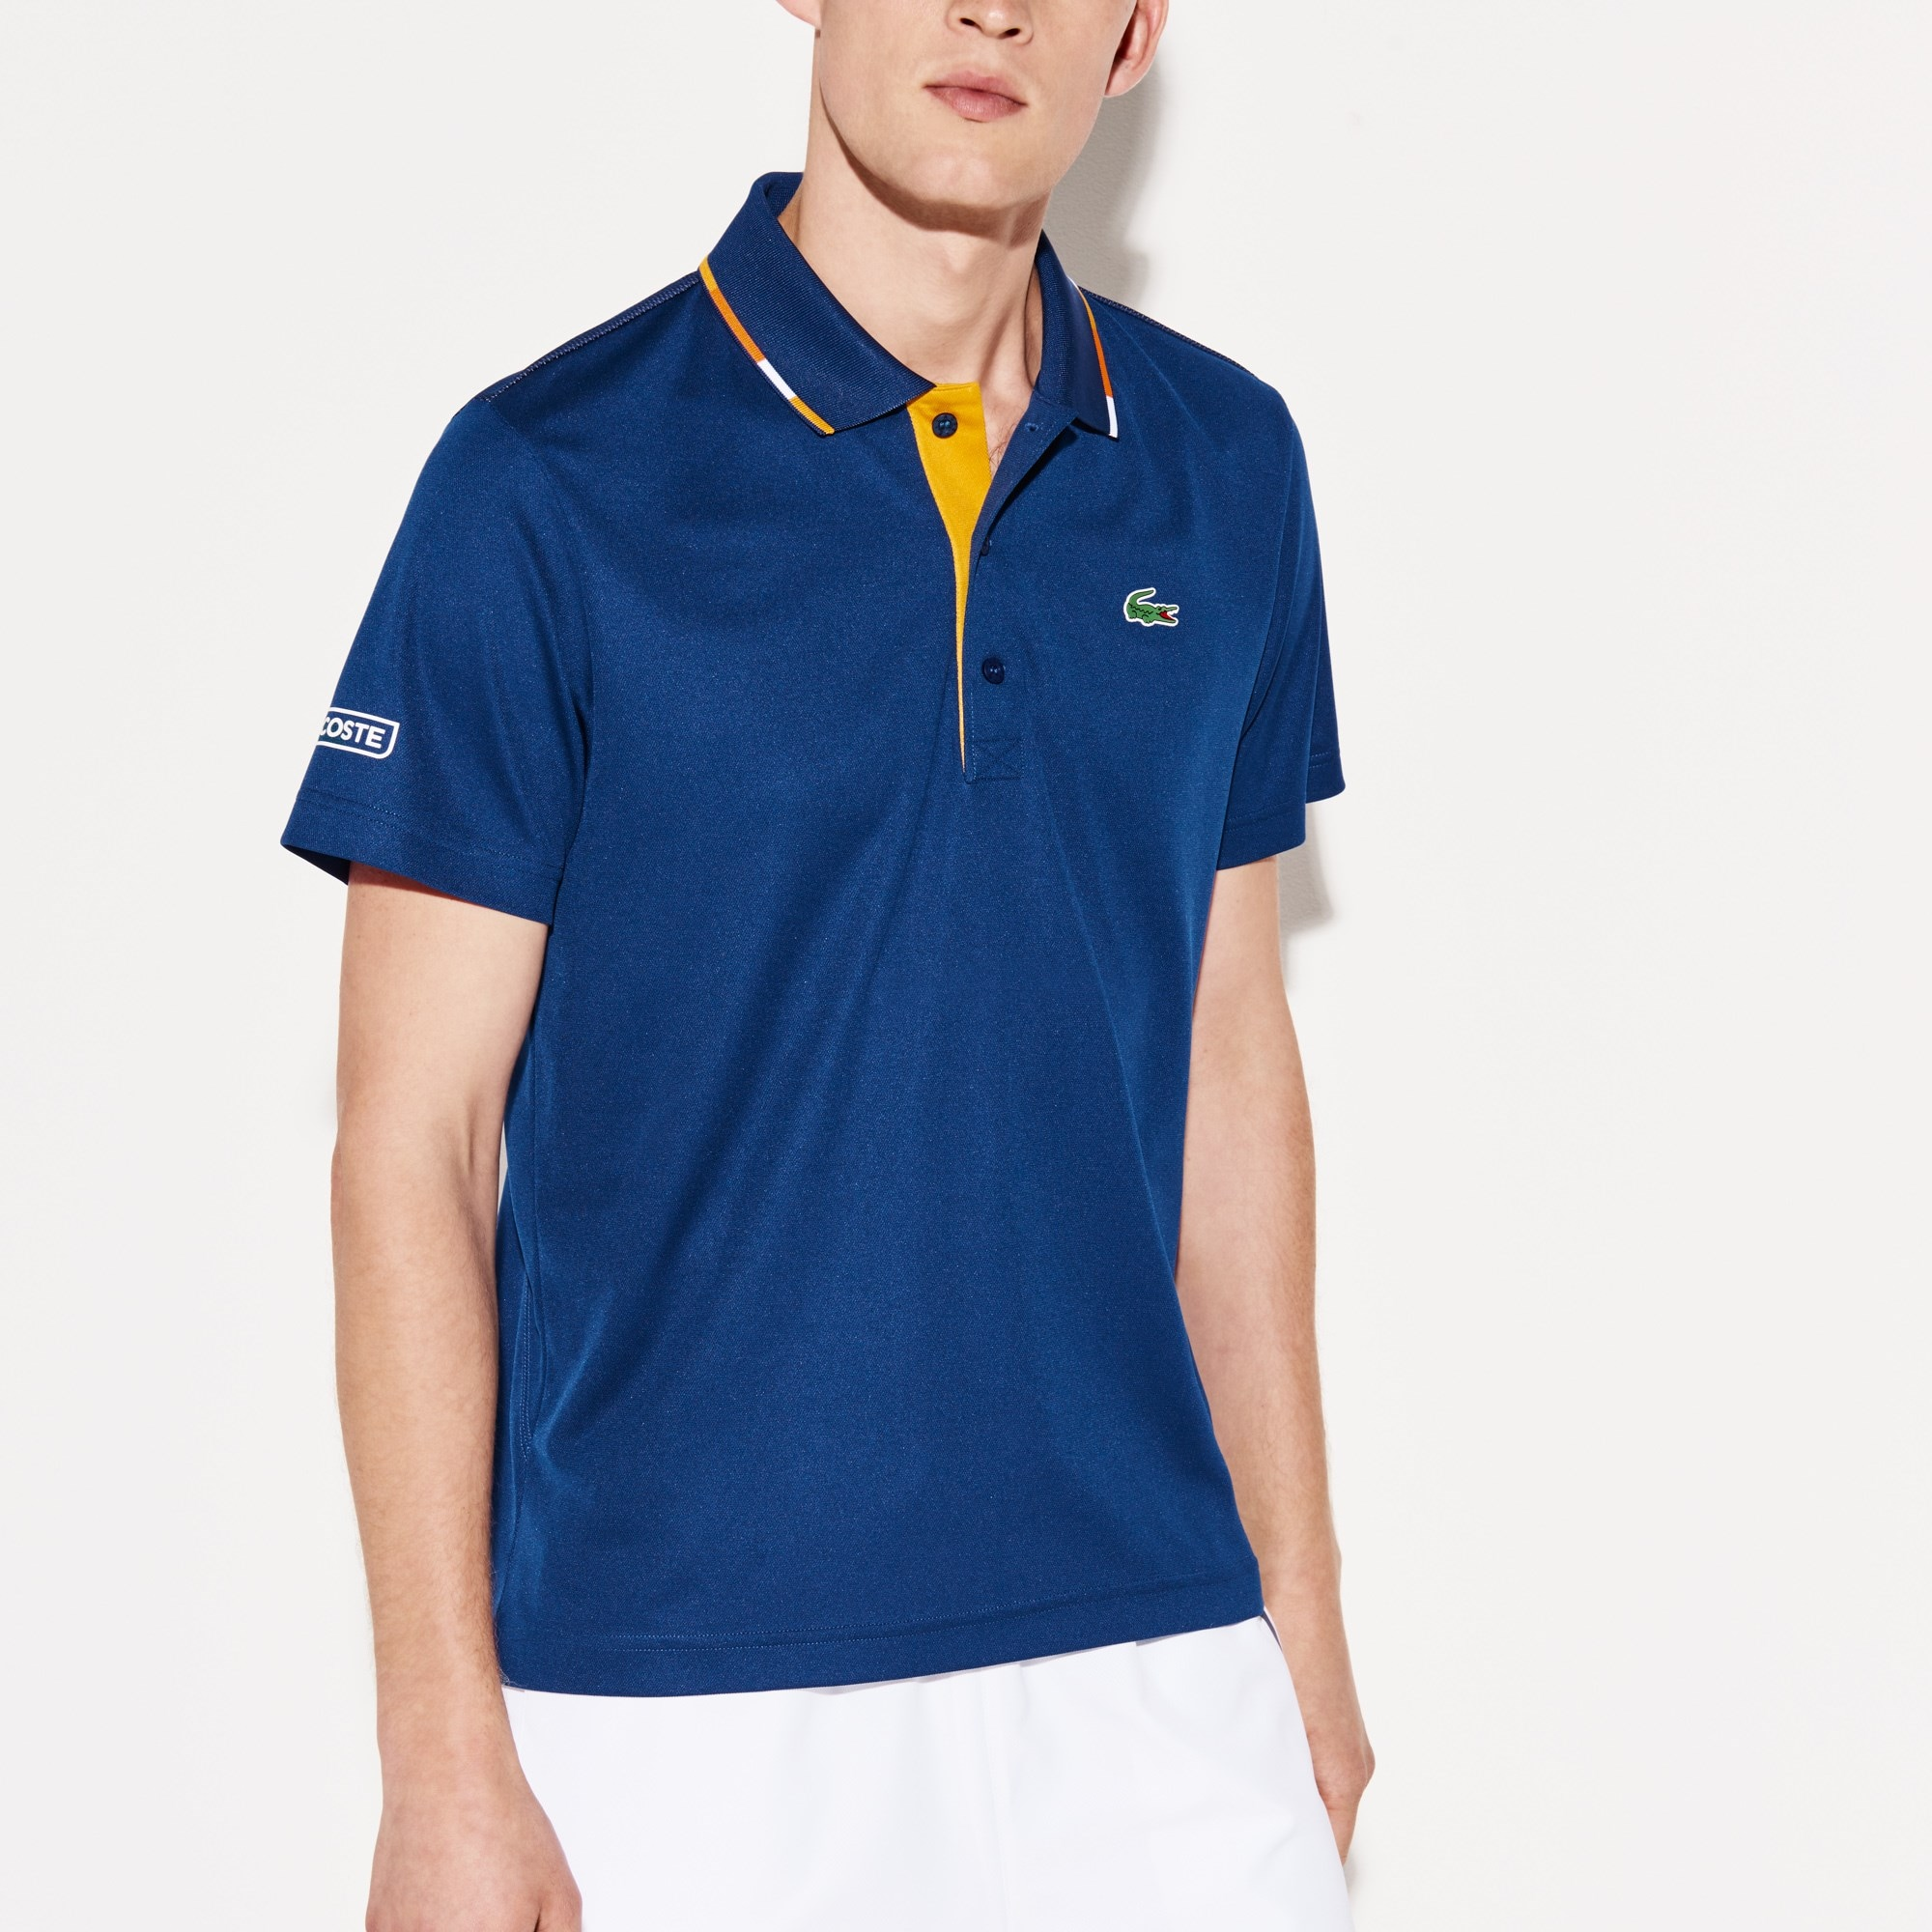 Men's Lacoste SPORT Piped Technical Piqué Tennis Polo